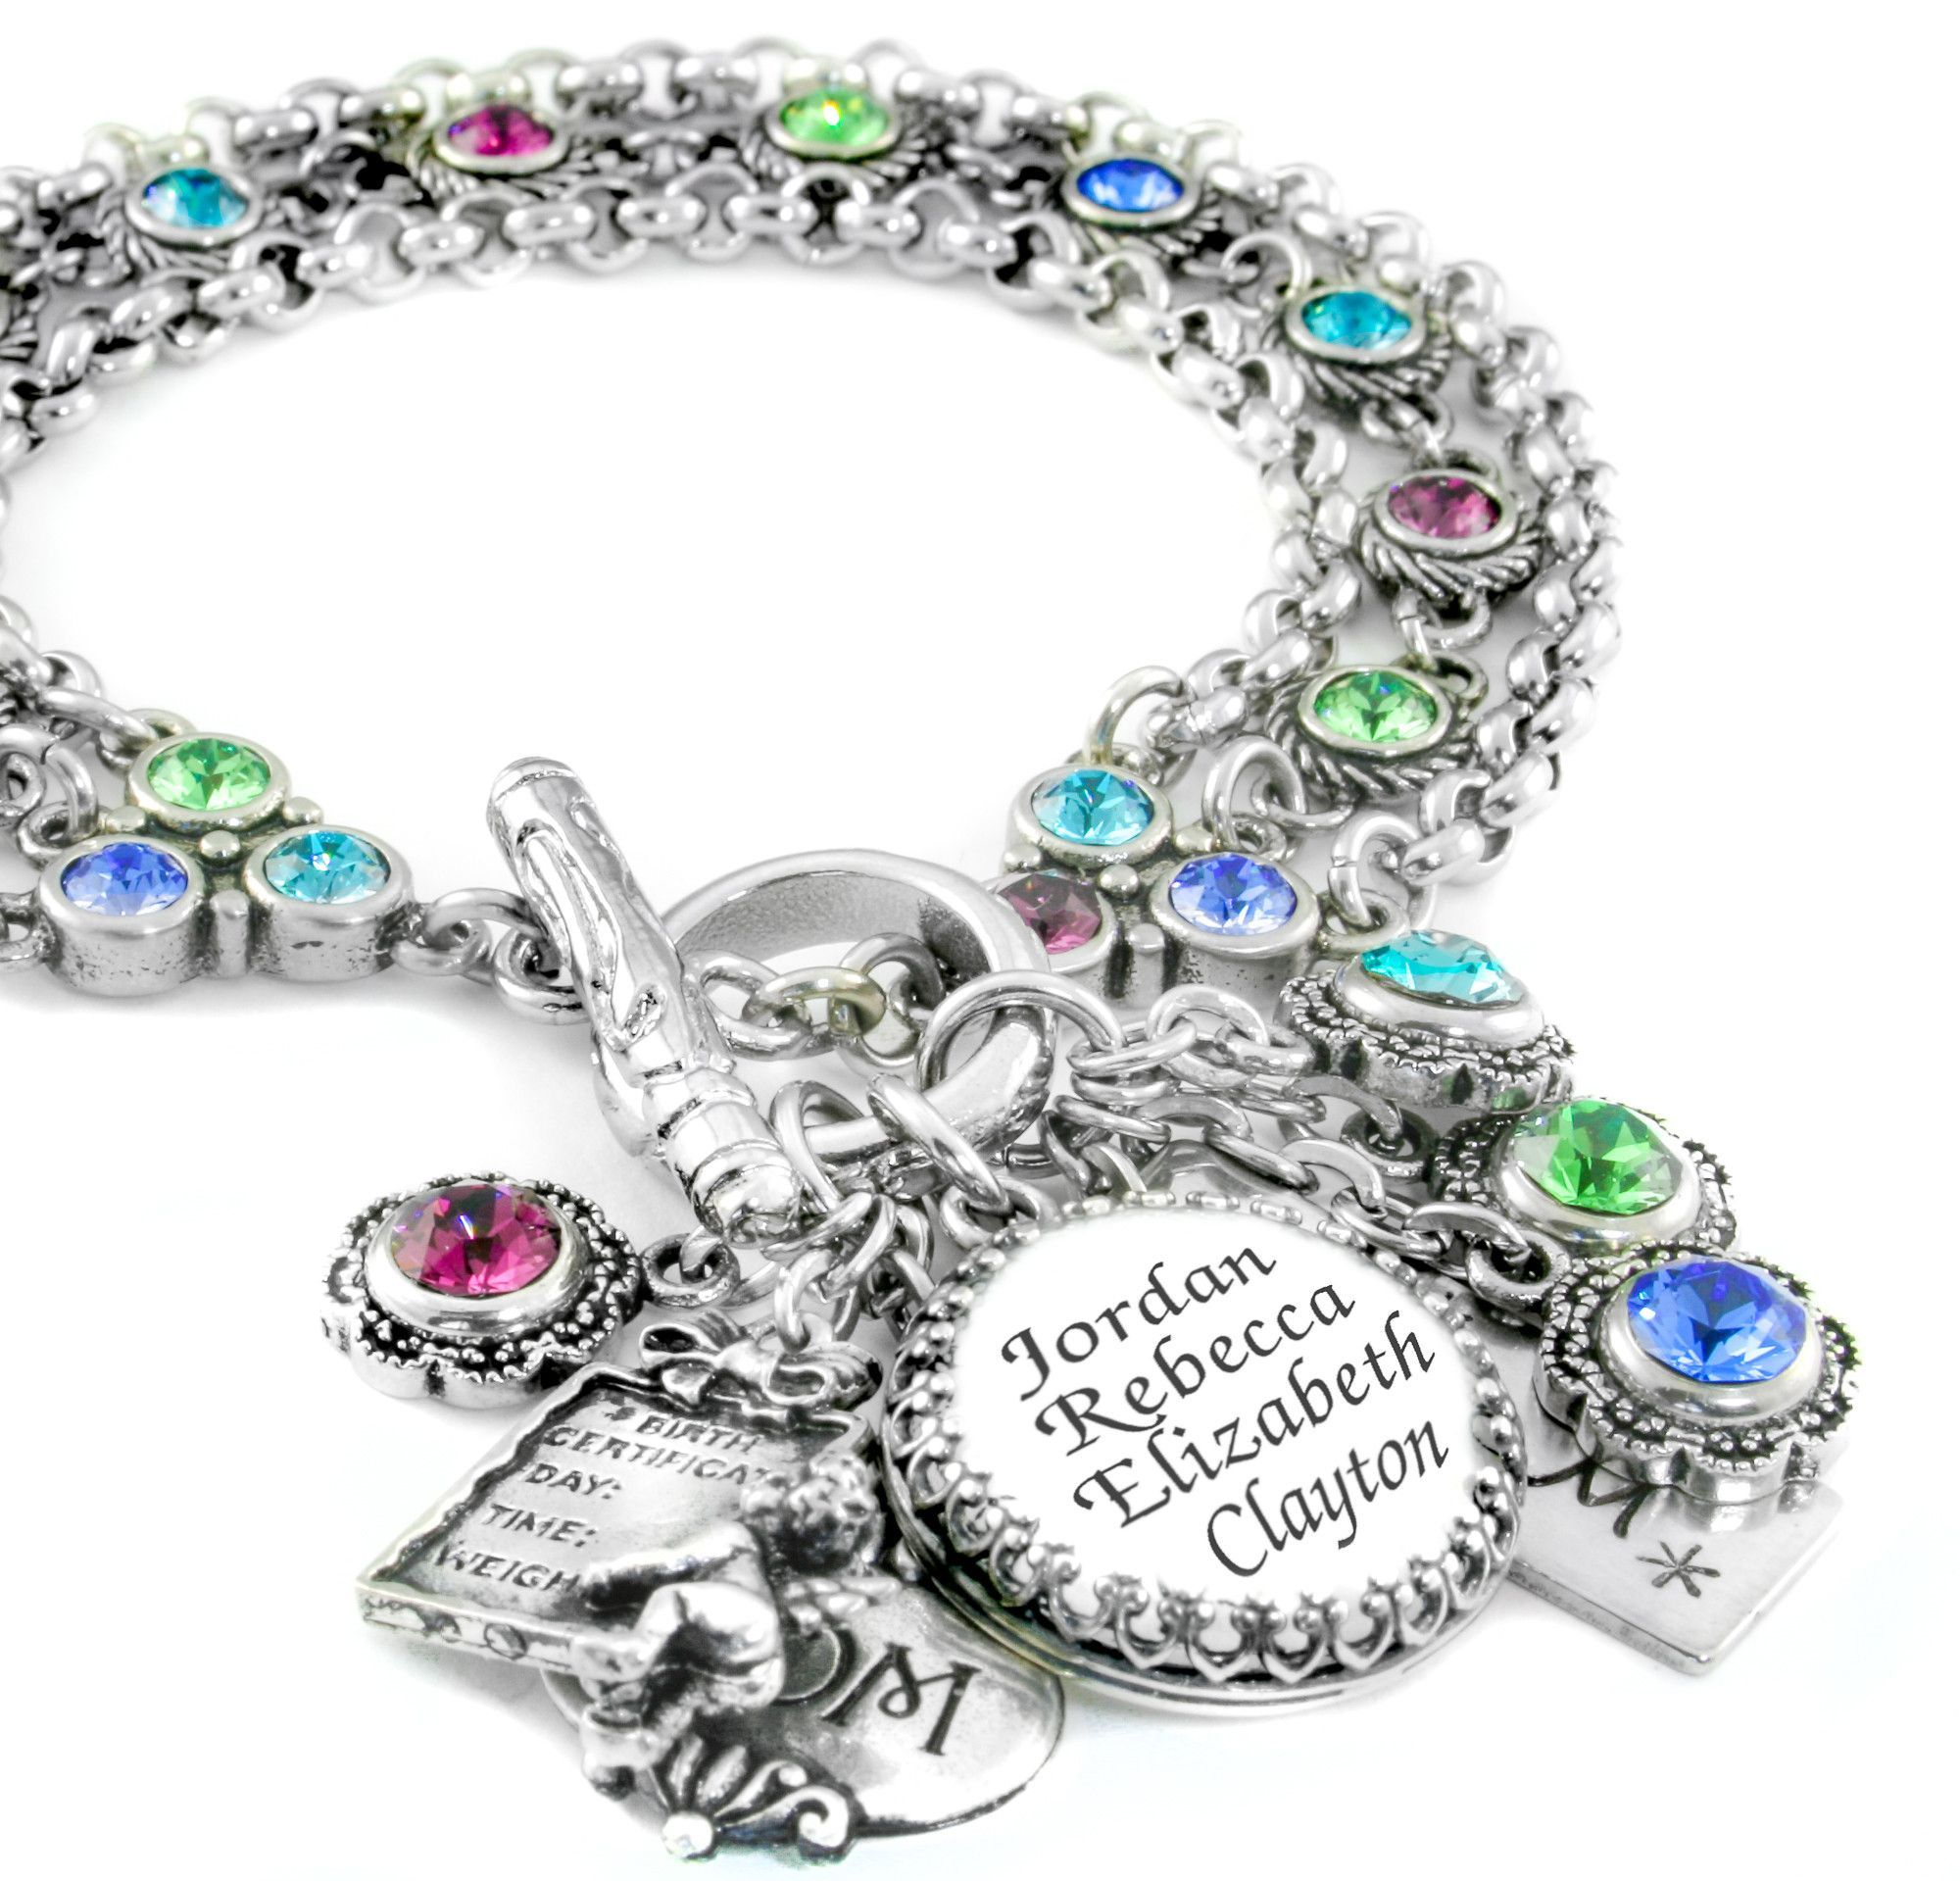 Mothers Charm Bracelet: Birthstone Charm Bracelet, Mother's Bracelet, Grandmother